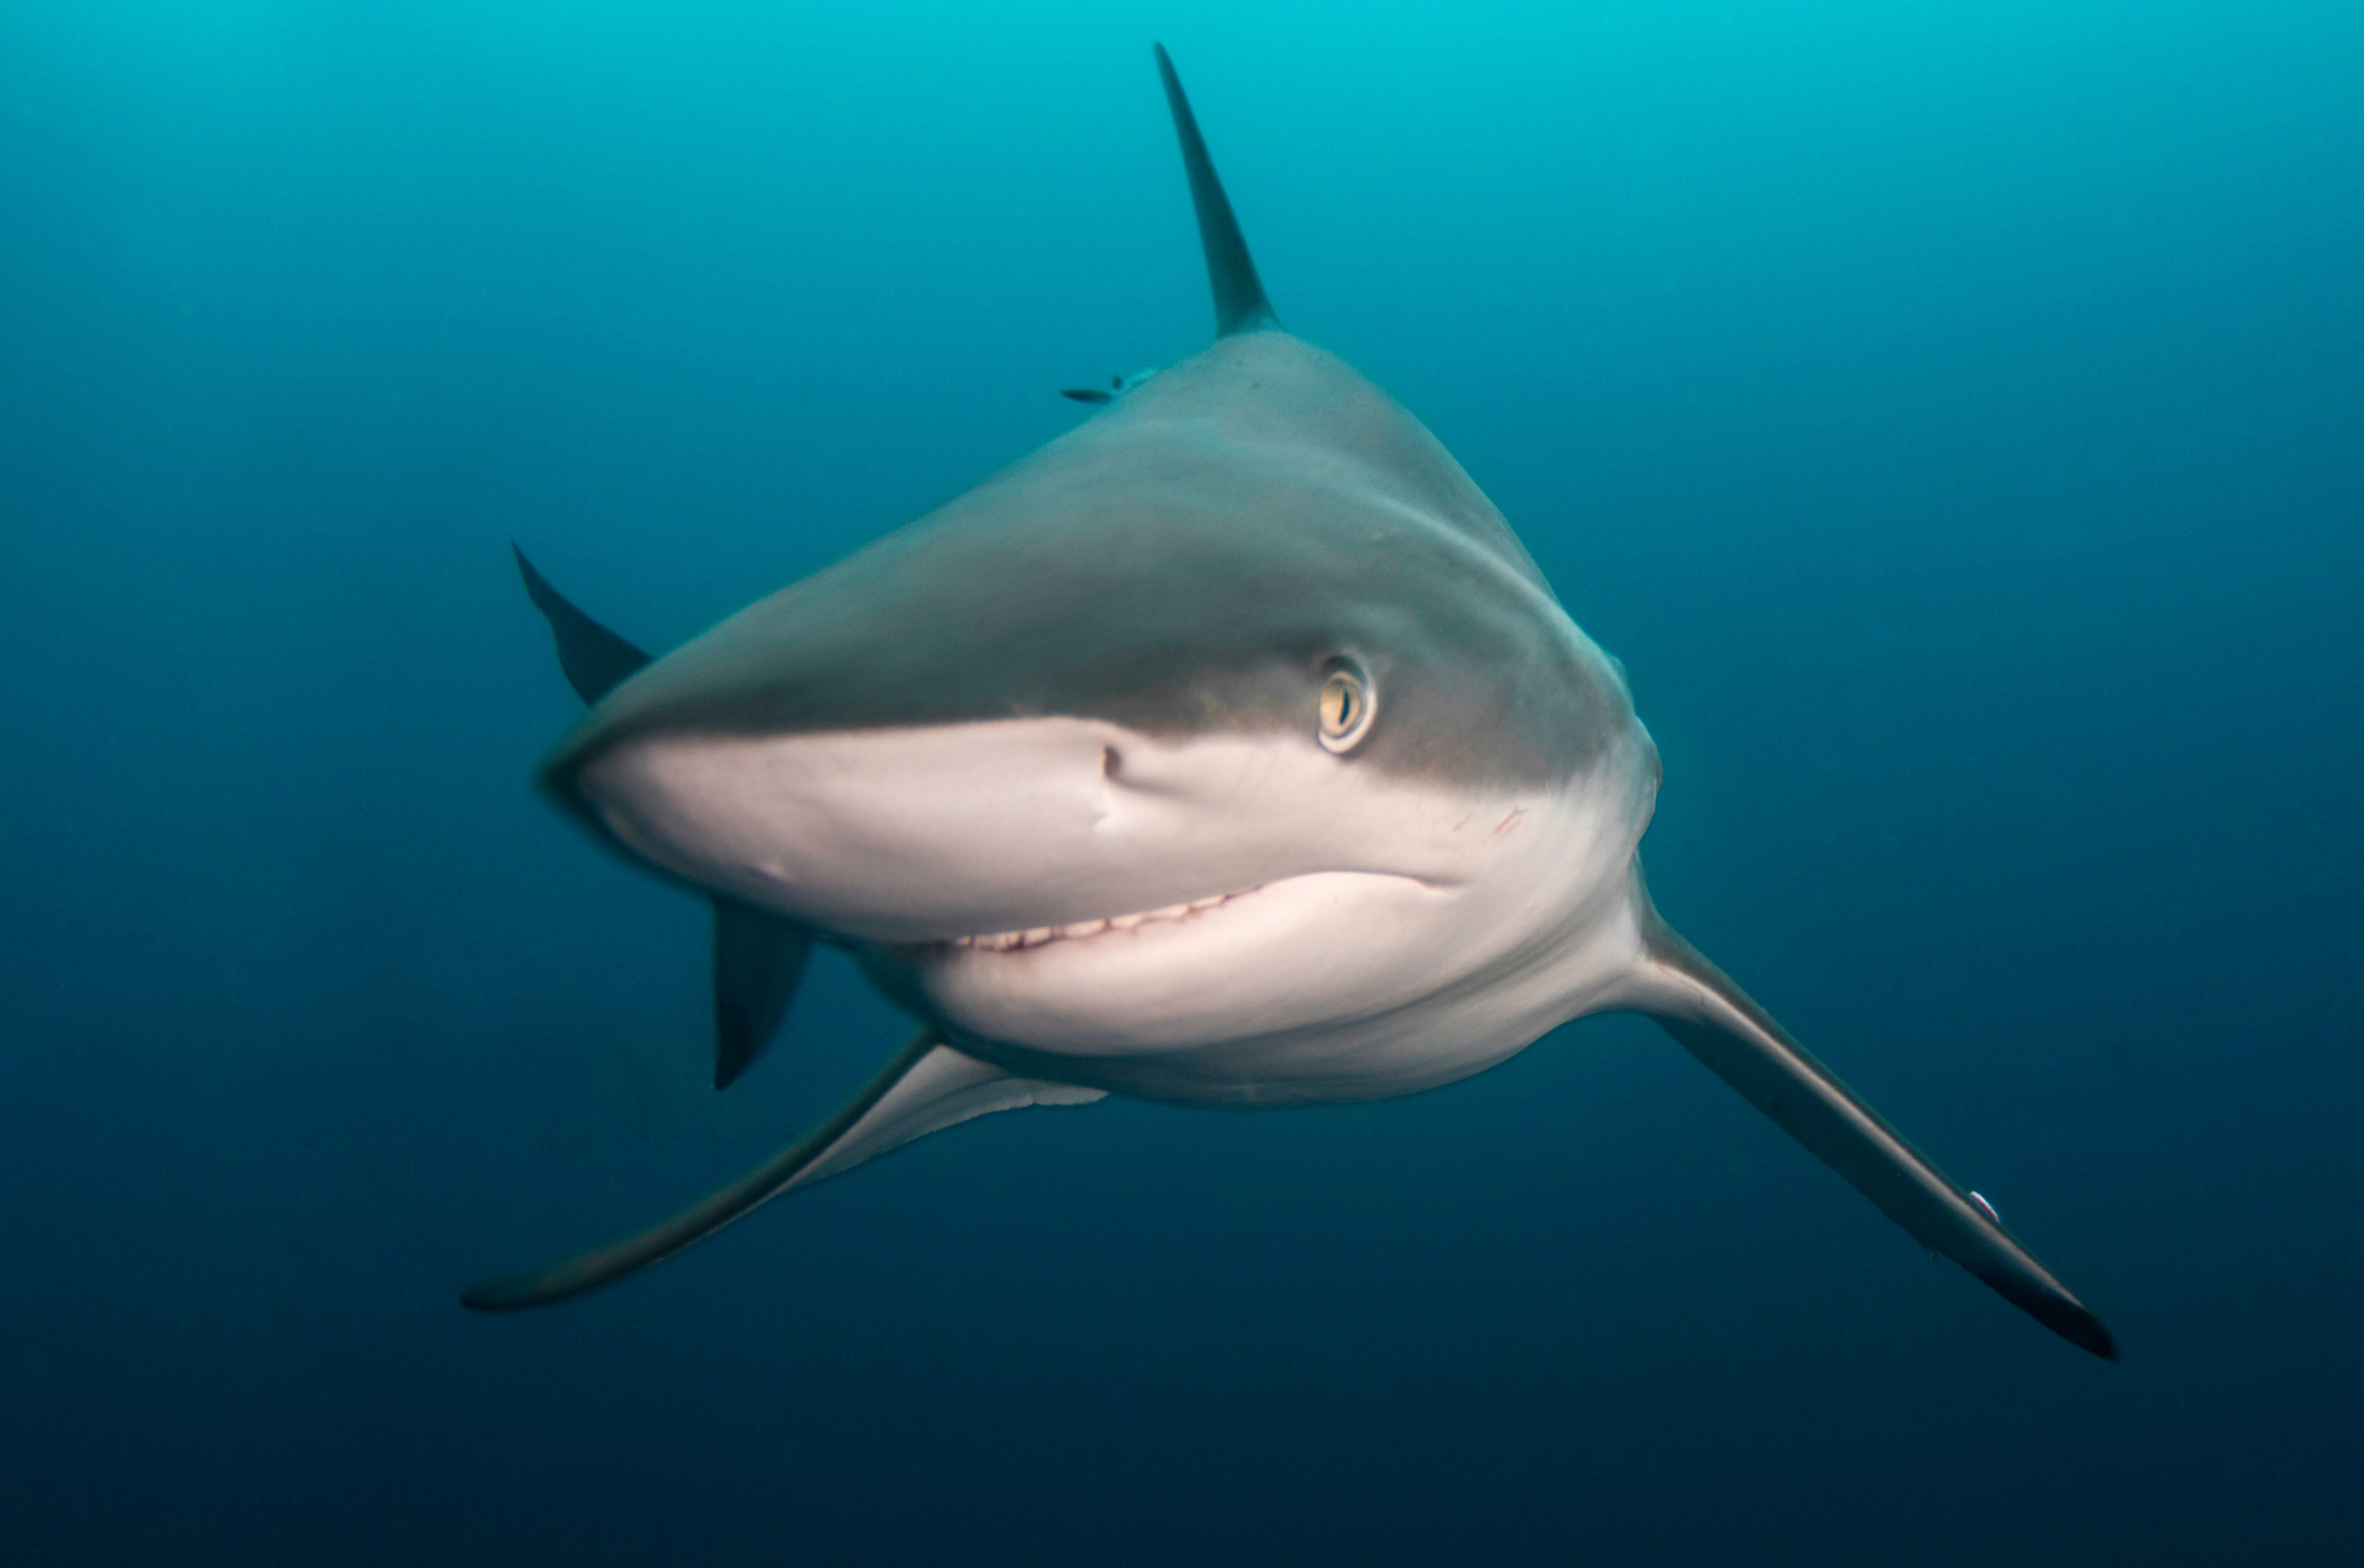 The blacktip shark strikes a pose as it stares into the camera